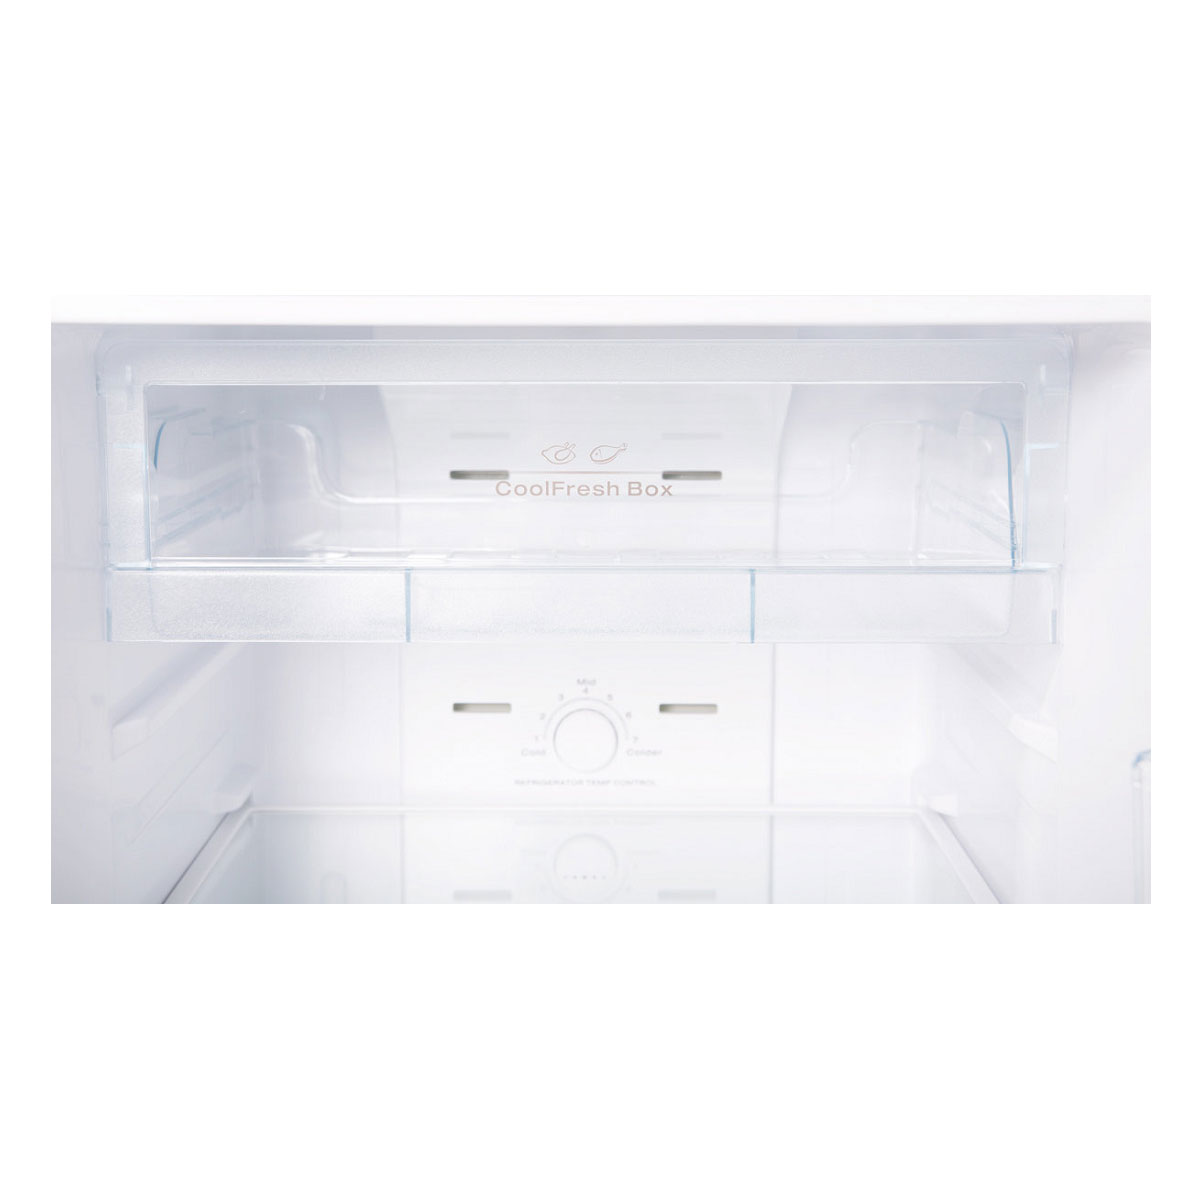 Hisense HR6TFF230 230Litres Top Mount Fridge 35252